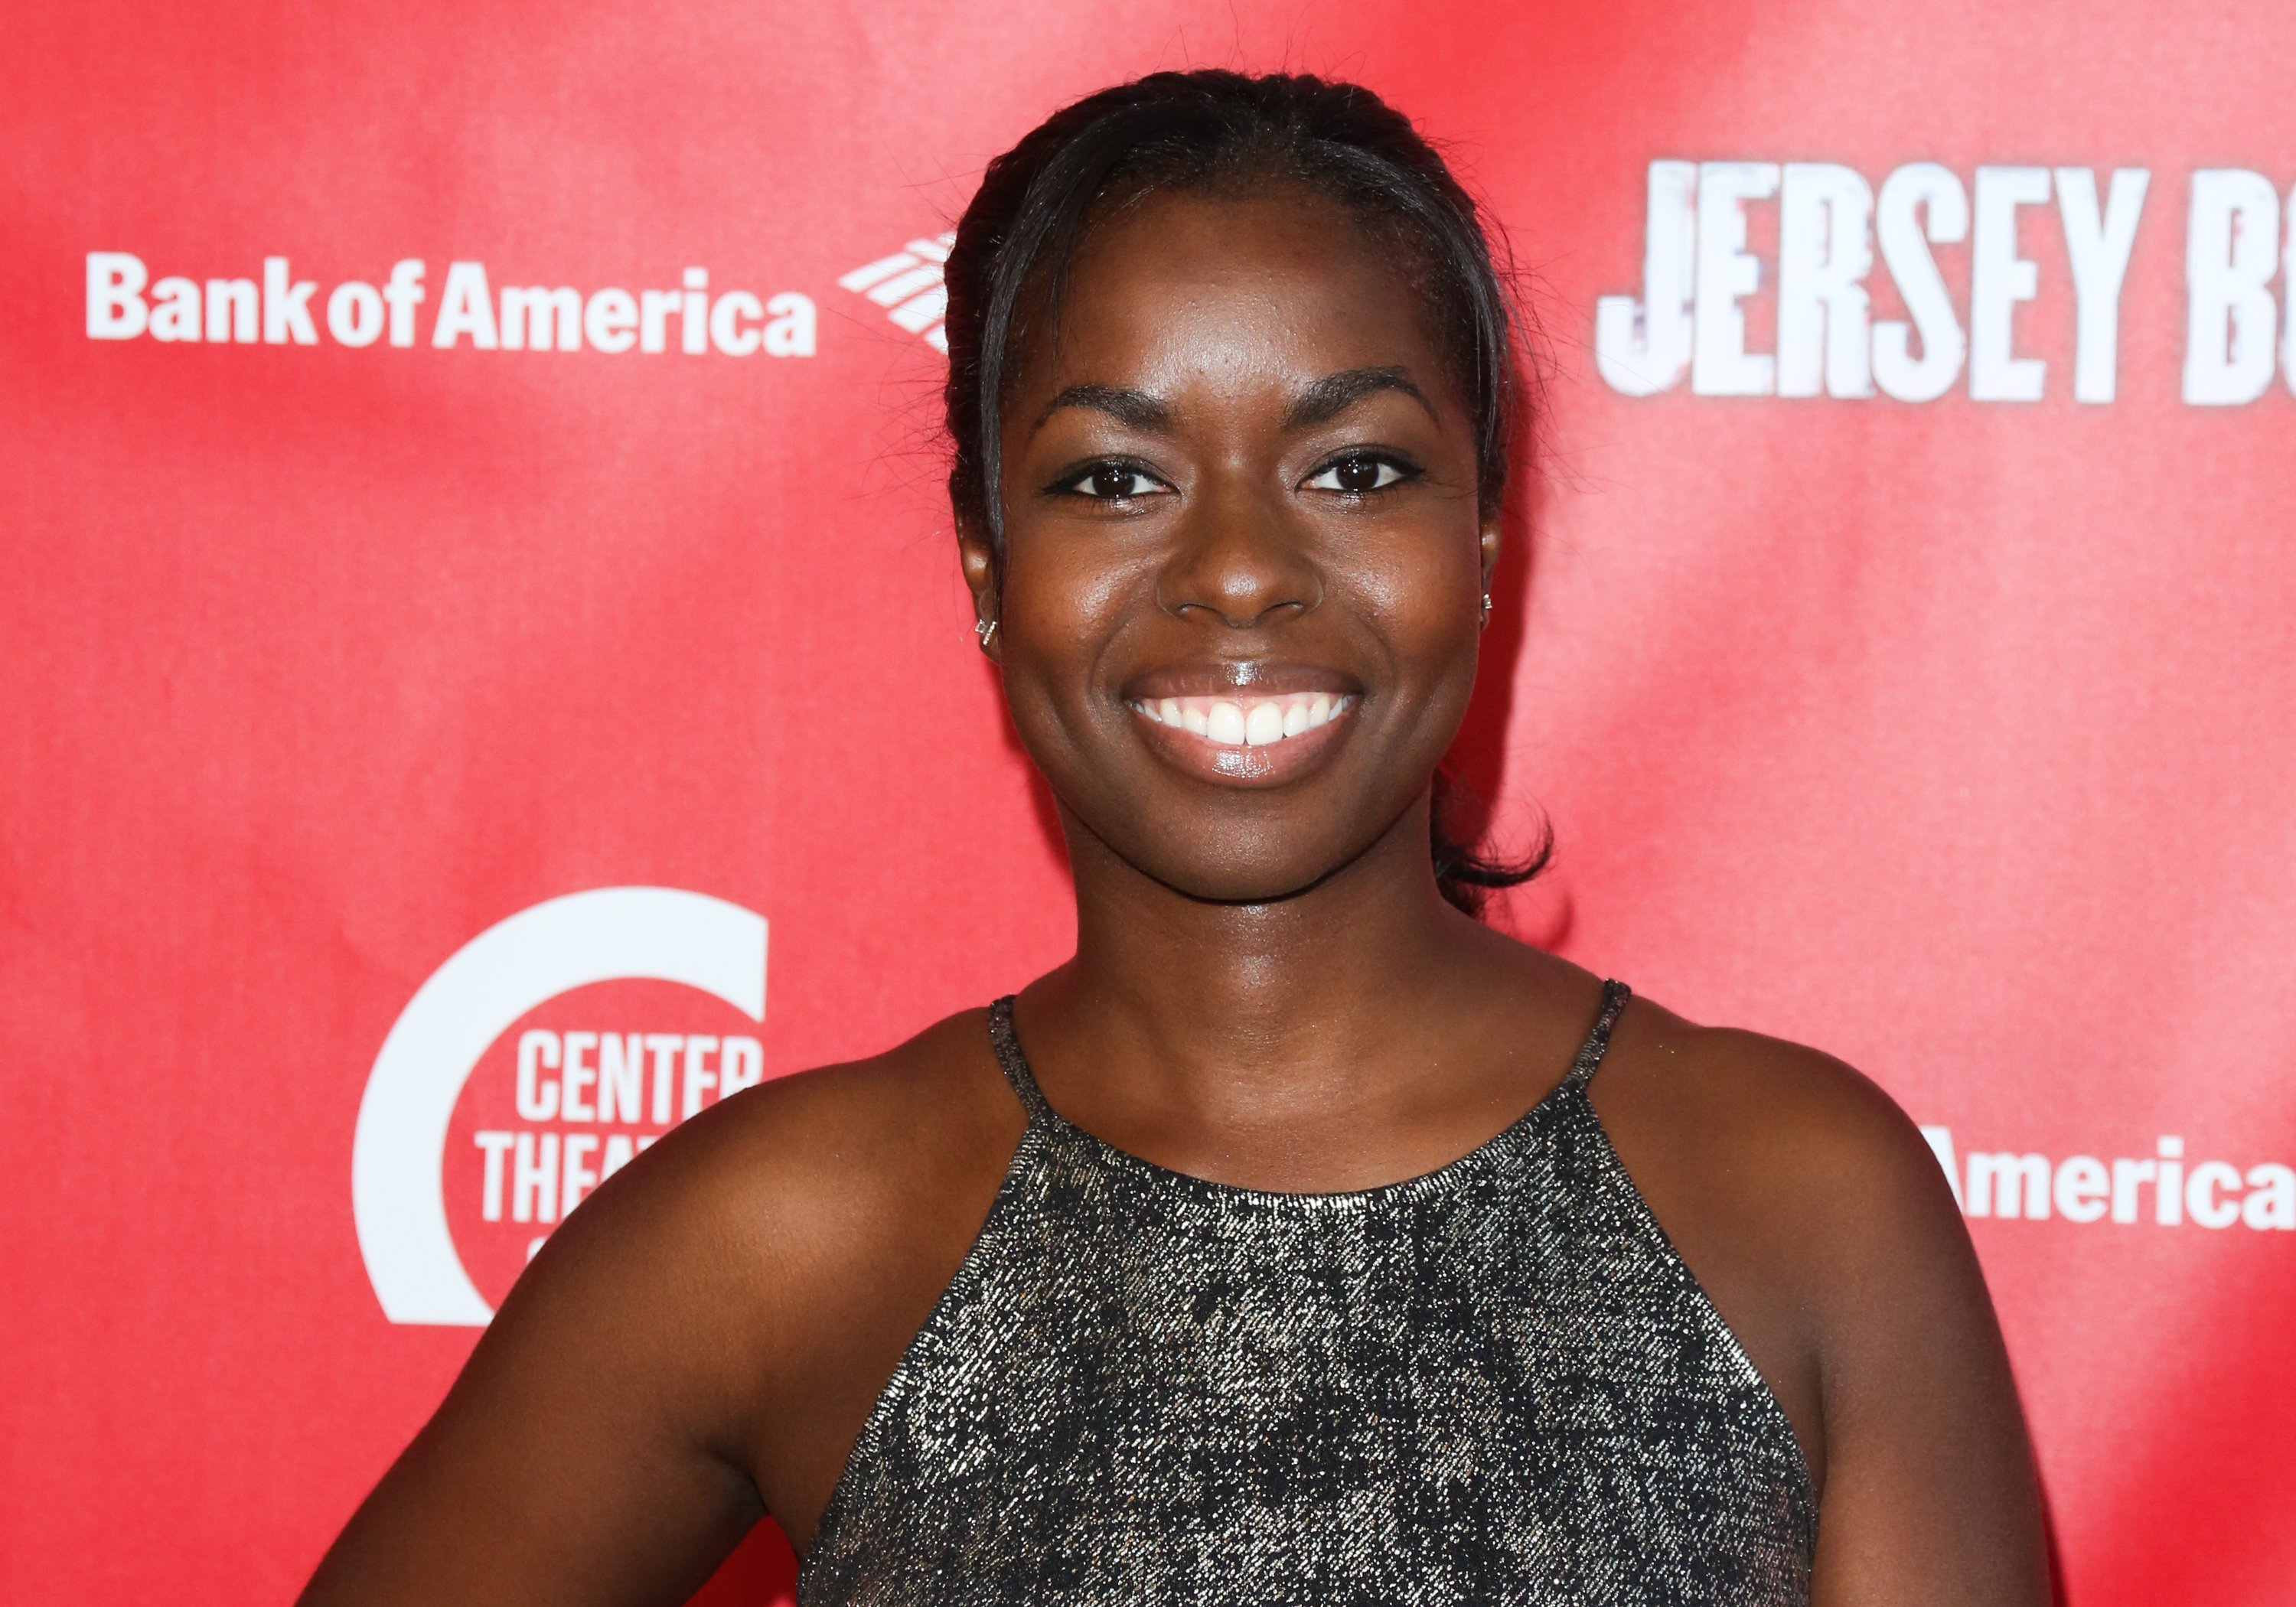 """Camille Winbush pictured at the opening night of """"Jersey Boys"""" at the Ahmanson Theatre on May 18, 2017 in Los Angeles, California.   Source: Getty Images"""